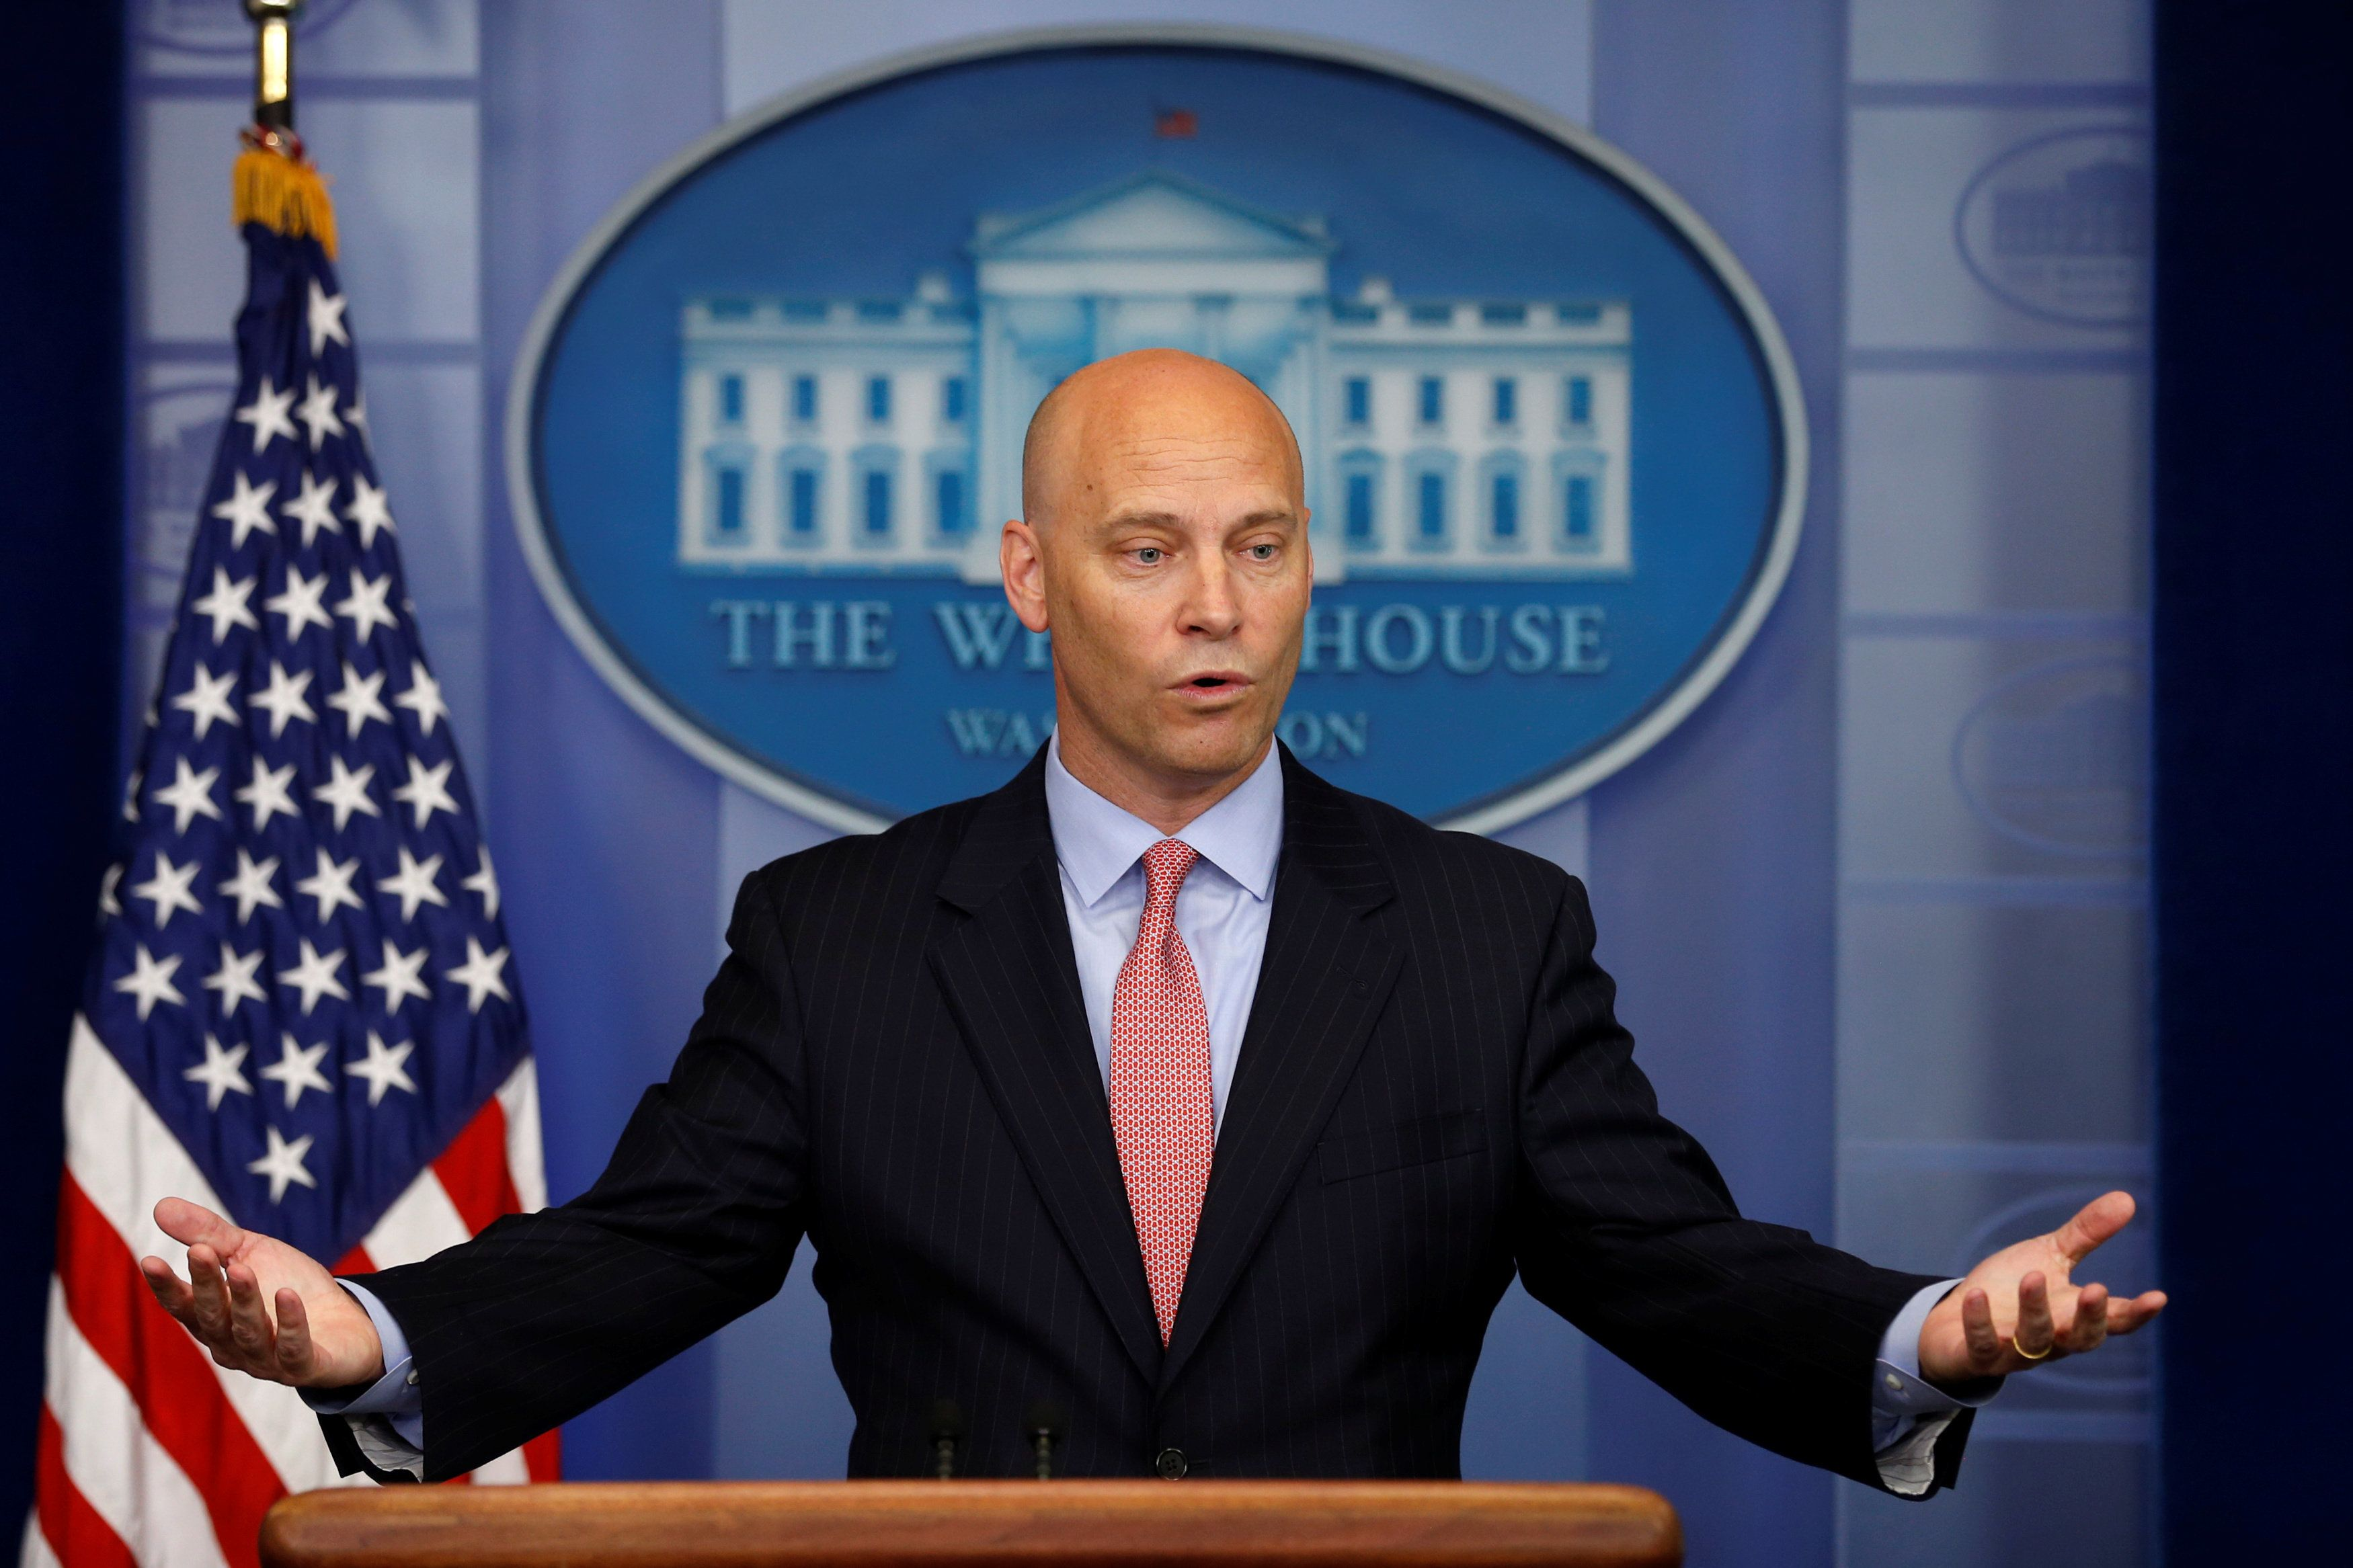 White House Legislative Affairs Director Marc Short addresses the daily press briefing at the White House in Washington, DC, U.S. July 10, 2017. REUTERS/Jonathan Ernst